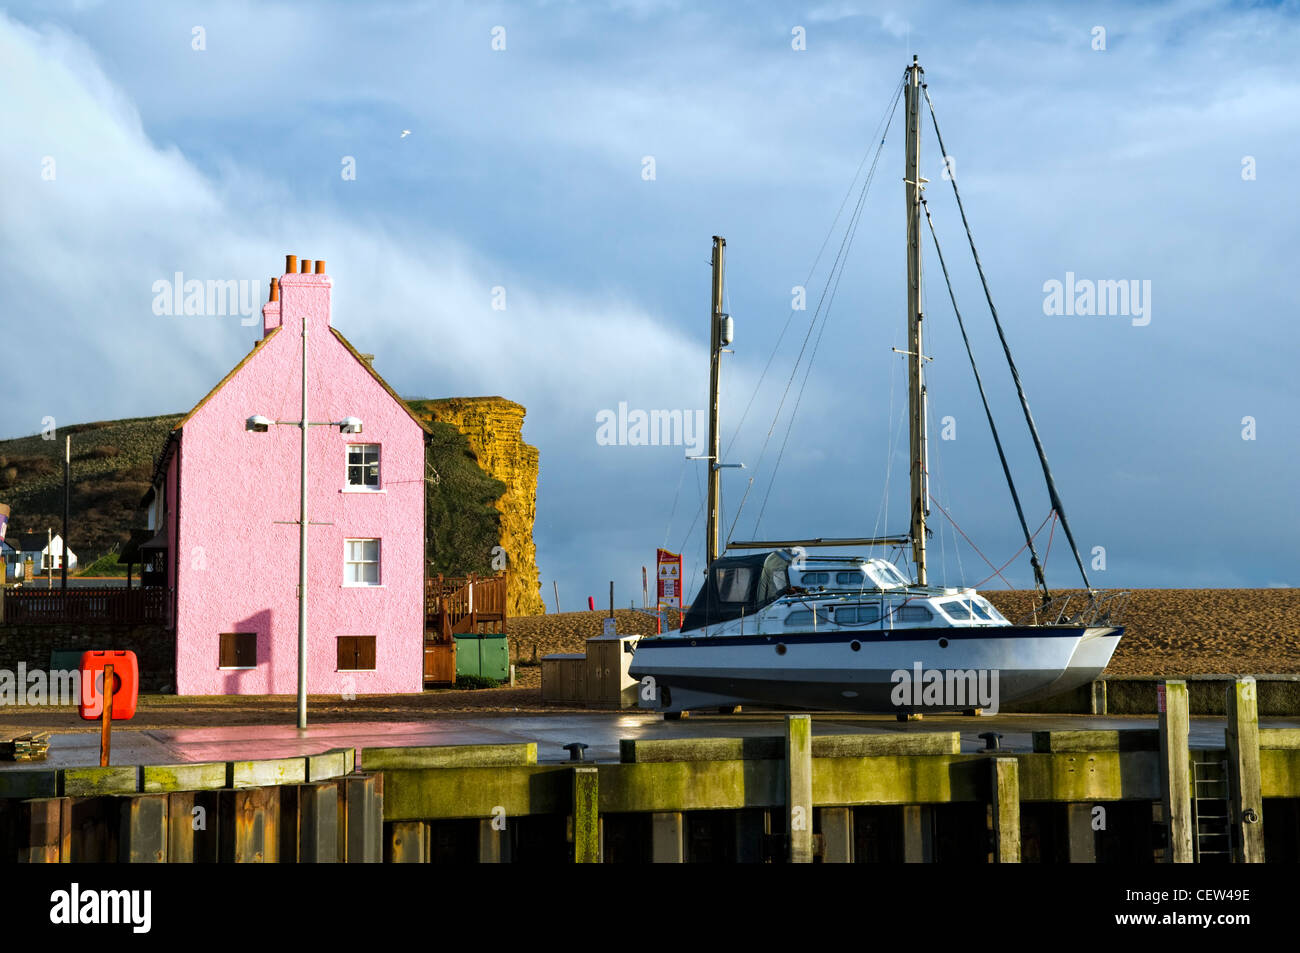 Colourful scene of house, cliffs and boat taken at West Bay harbour near Bridport, Dorset, uk after a storm in winter Stock Photo